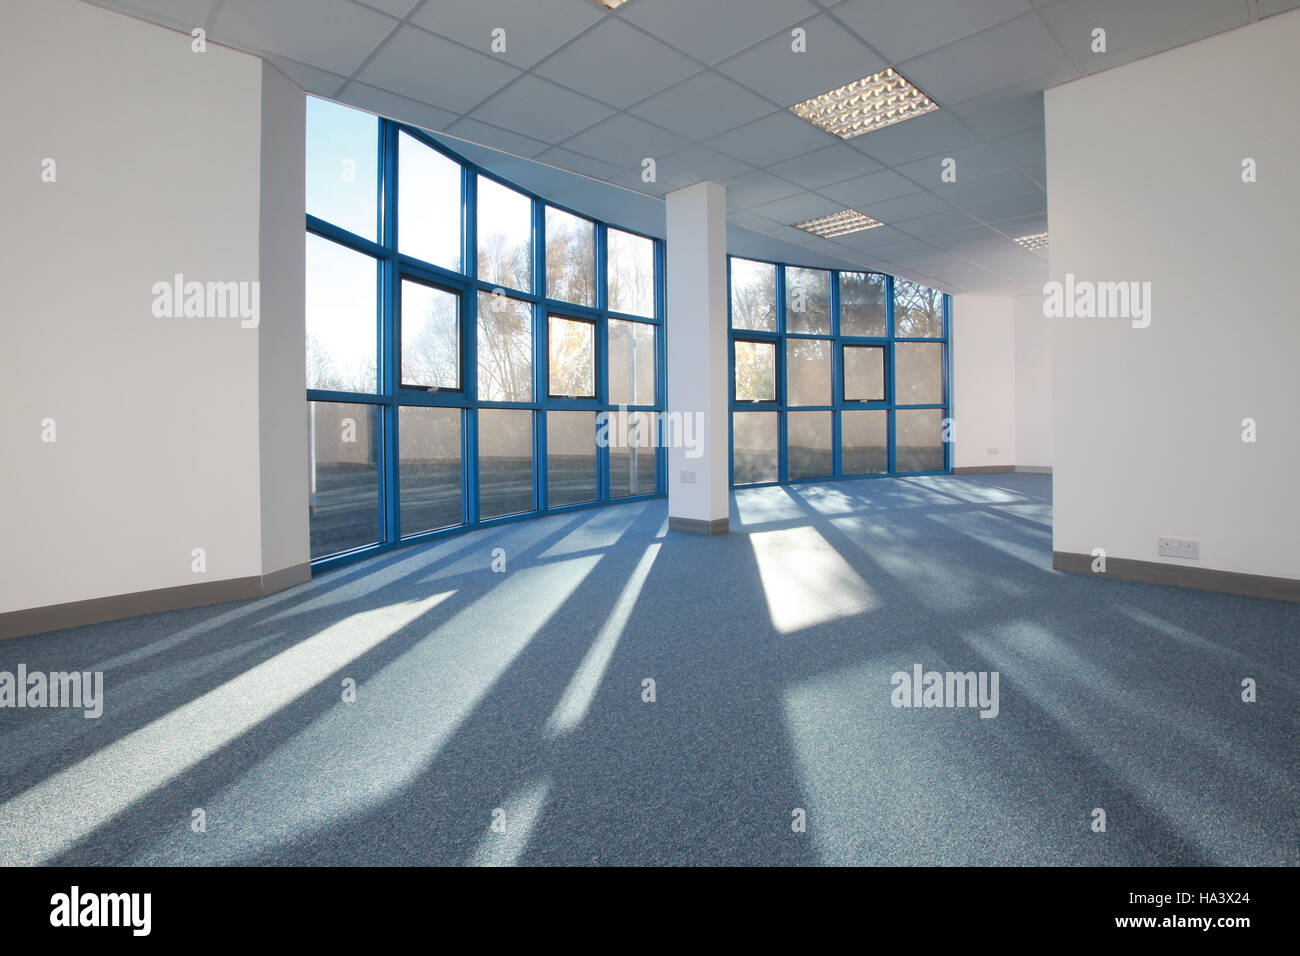 bright sunlit empty office space with sunlight streaming through windows - Stock Image